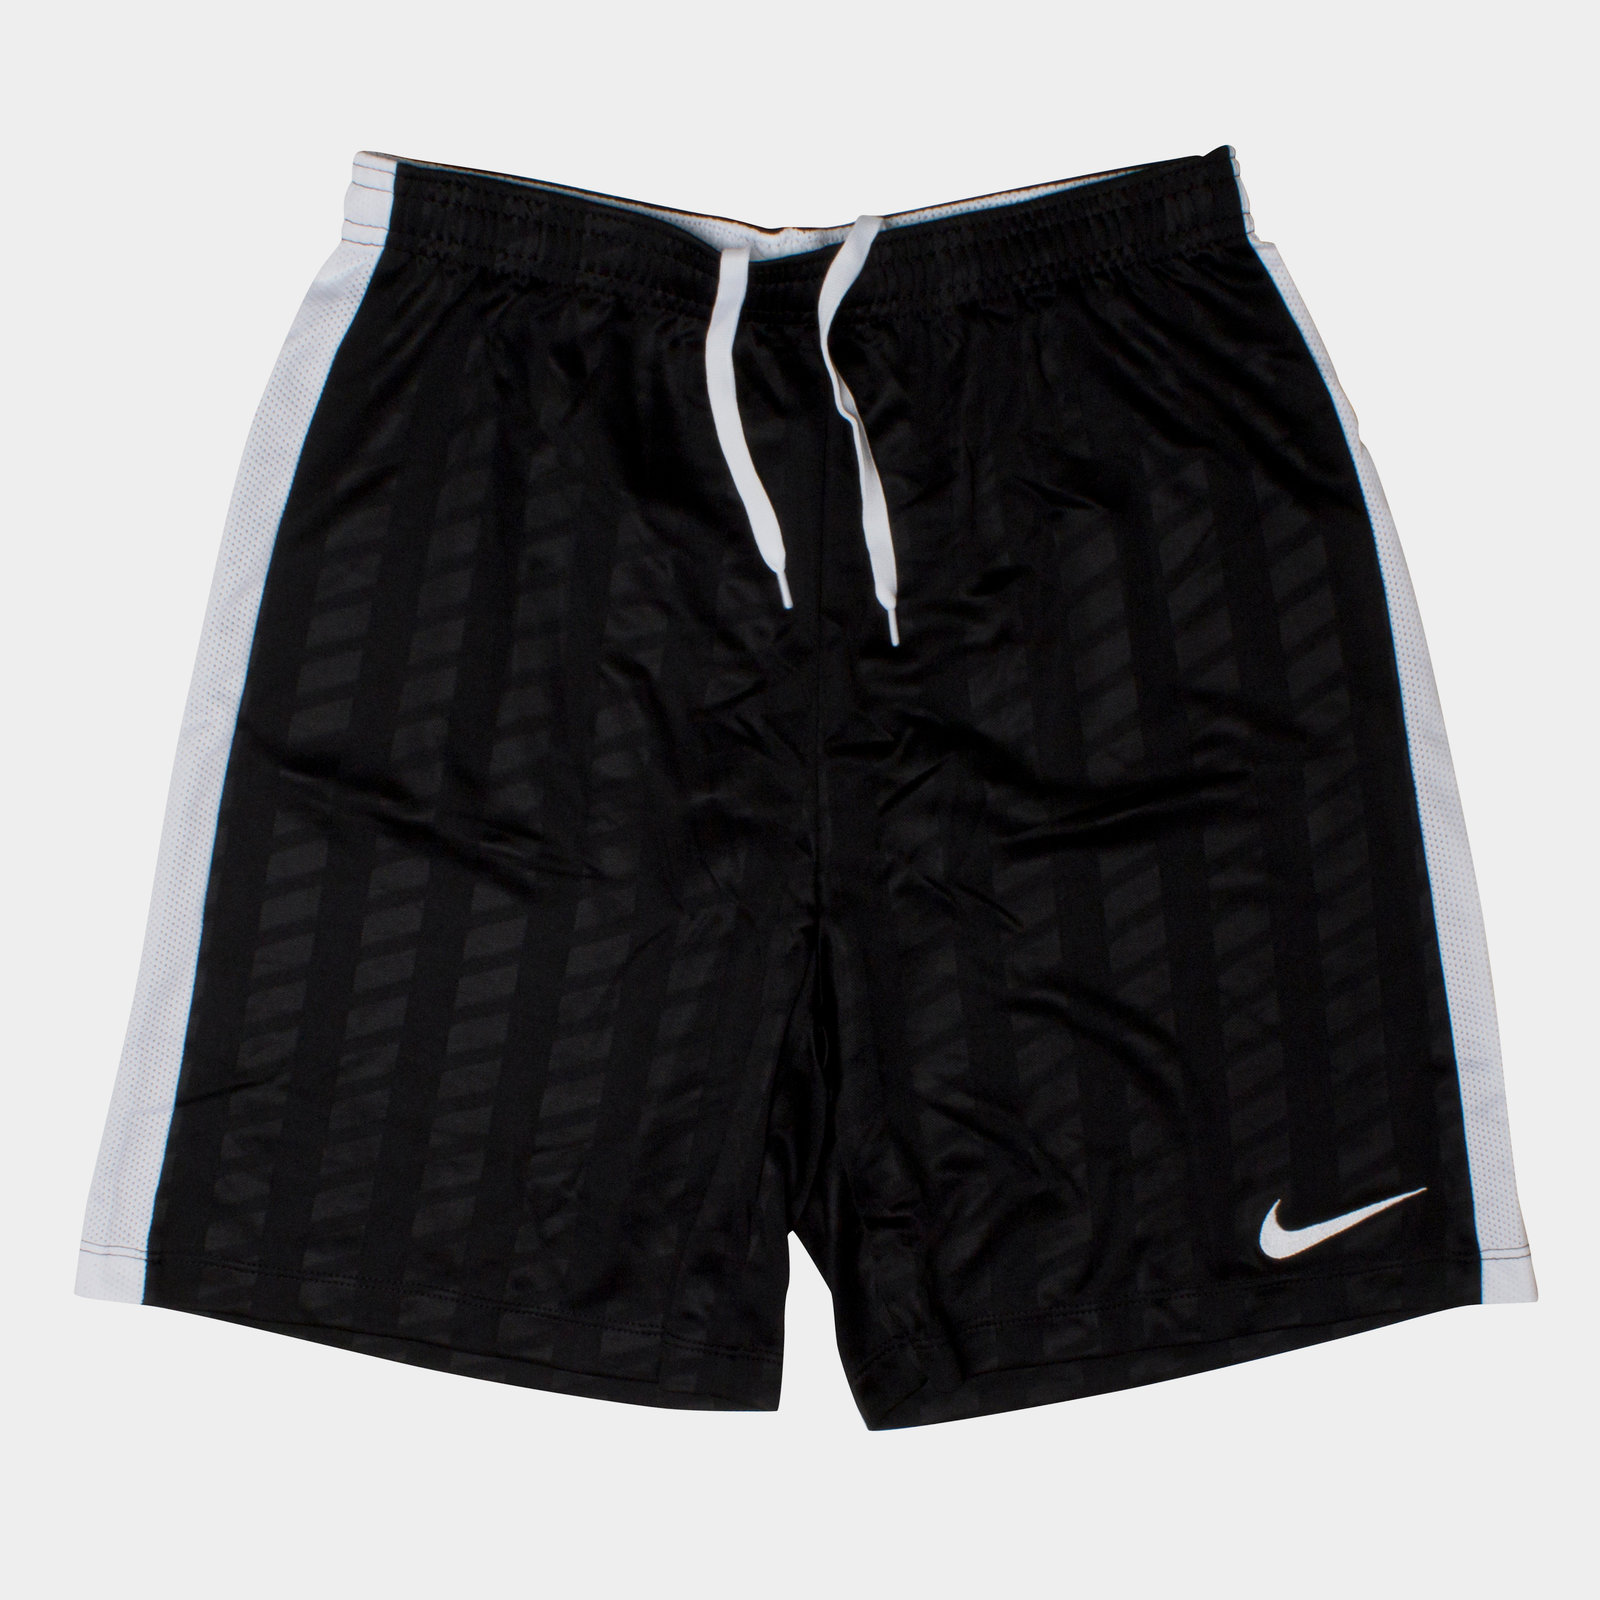 Image of Academy Kids Football Training Shorts